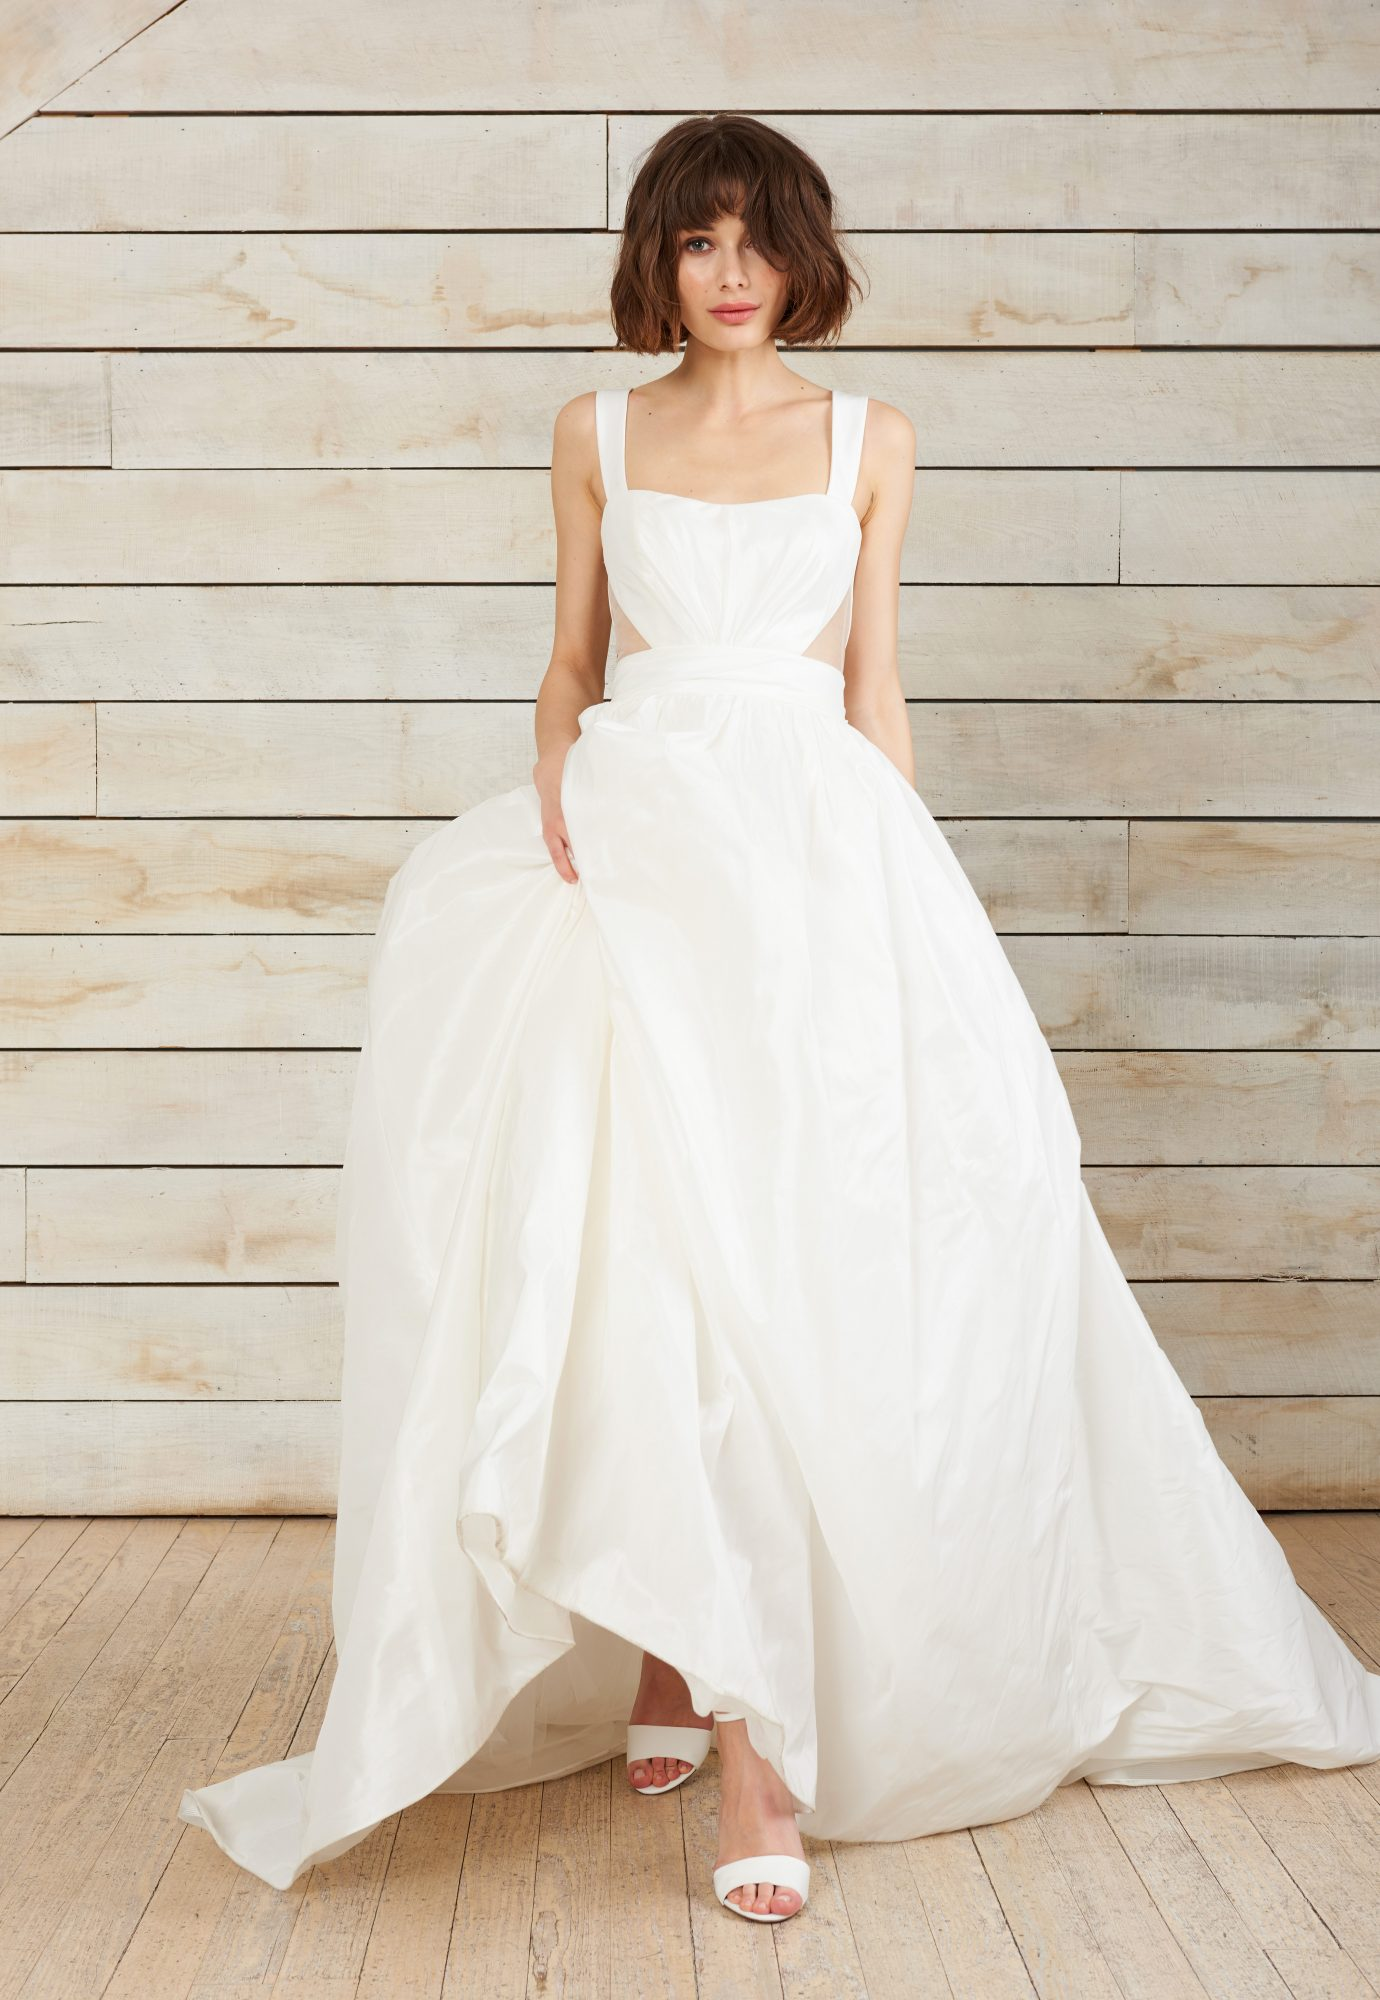 nouvelle amsale sleeveless ball gown wedding dress spring 2018